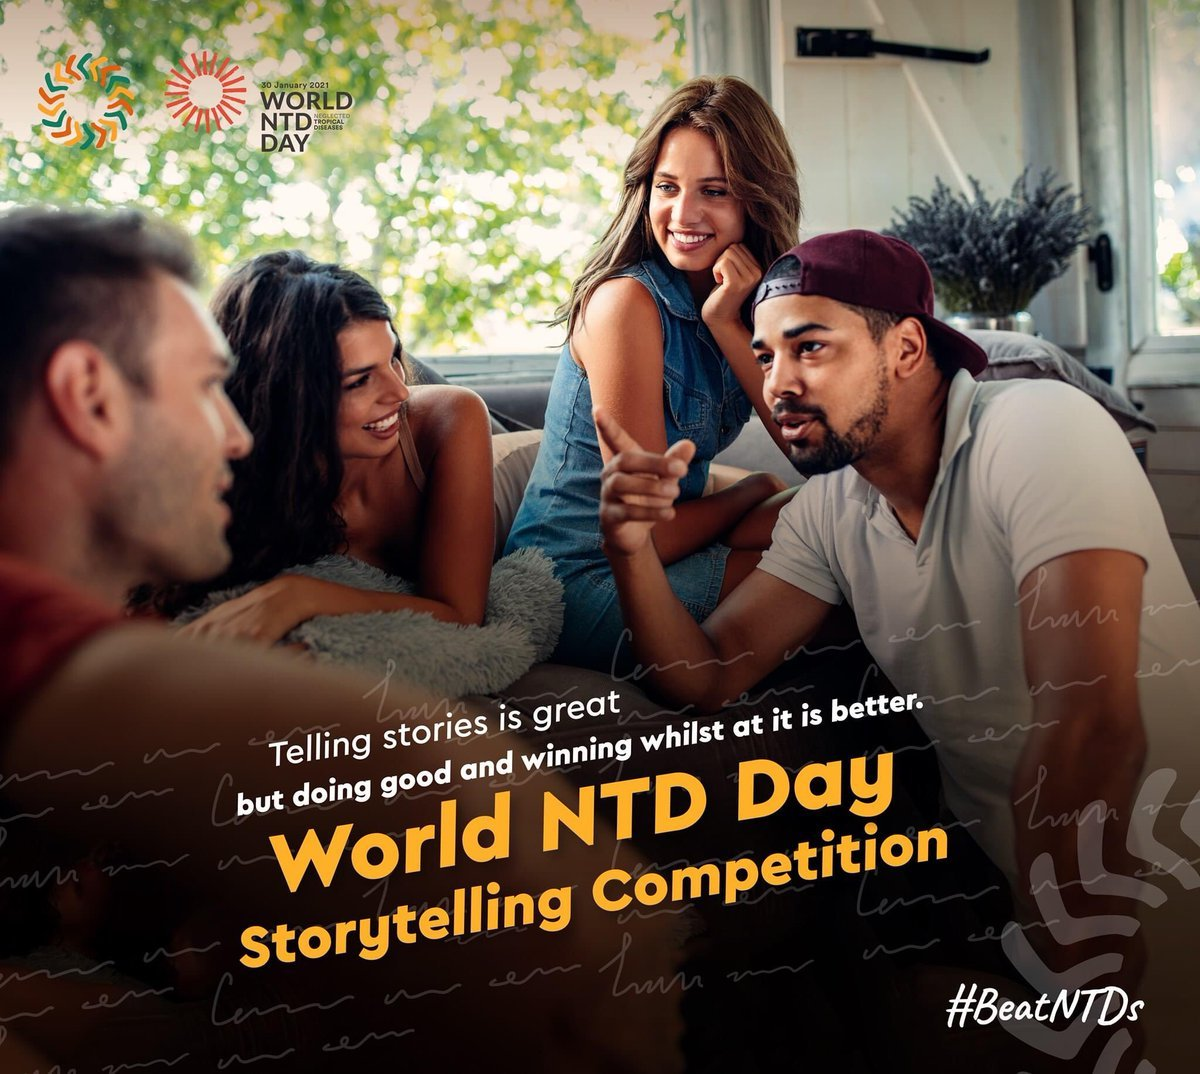 World NTD Storytelling Competition